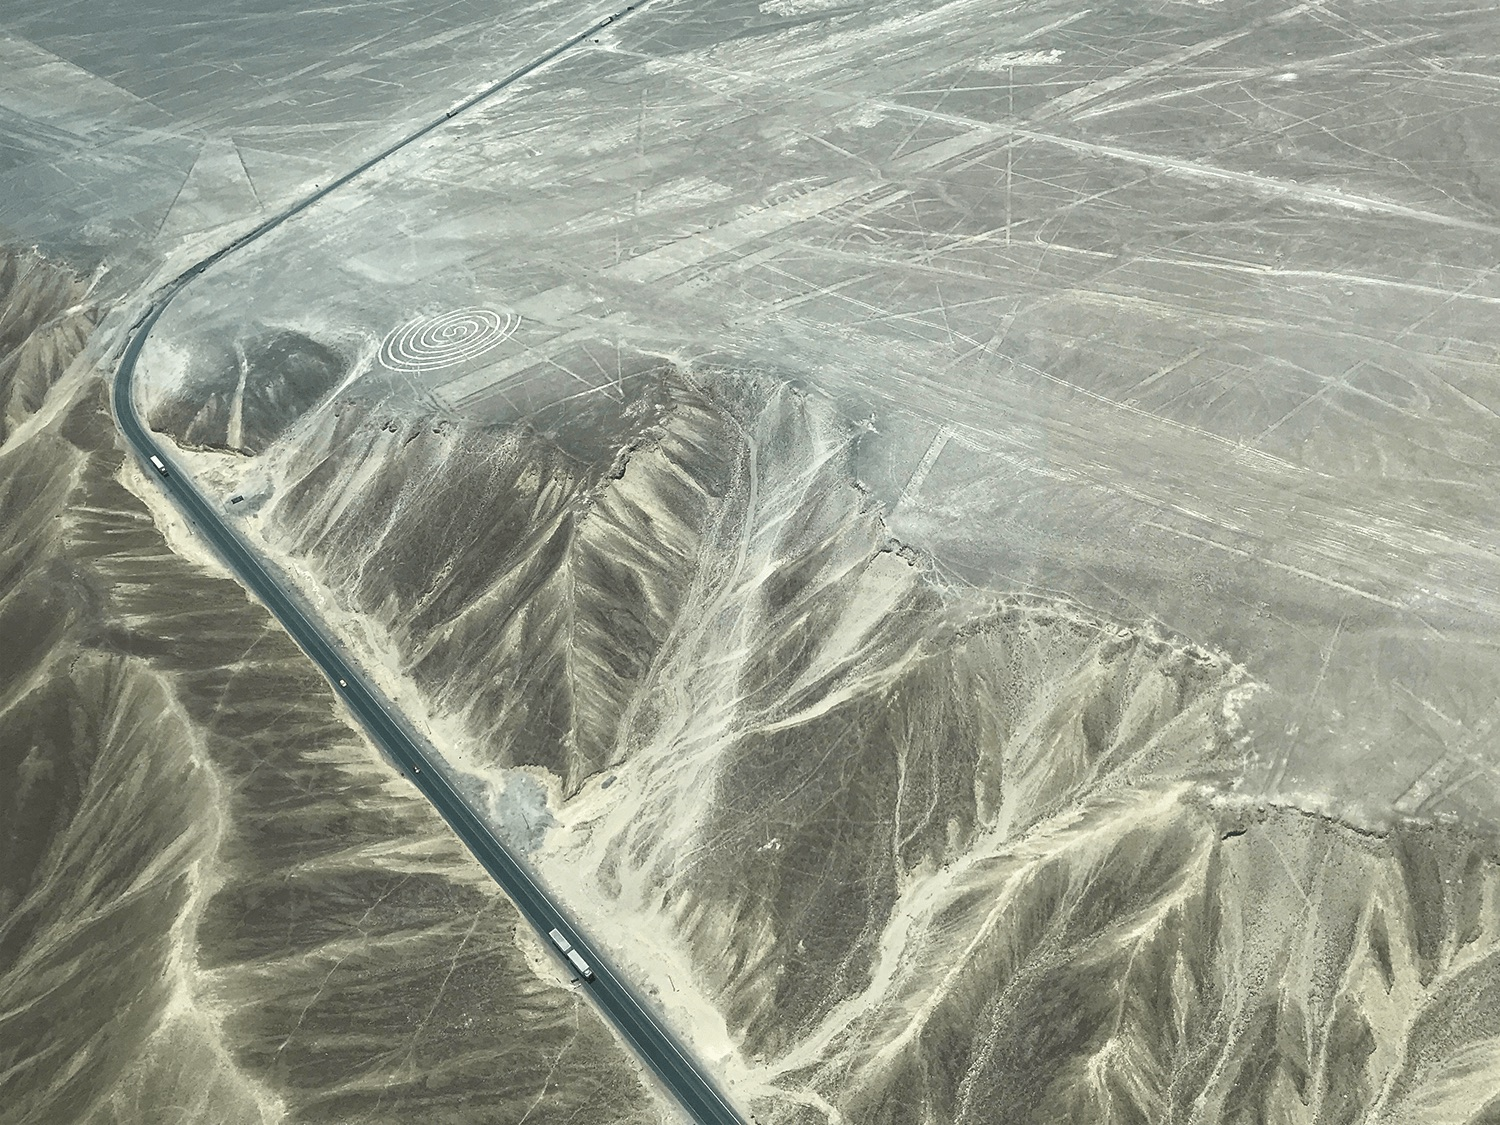 Nazca Lines | Ancient drawing of a spiral in Peru